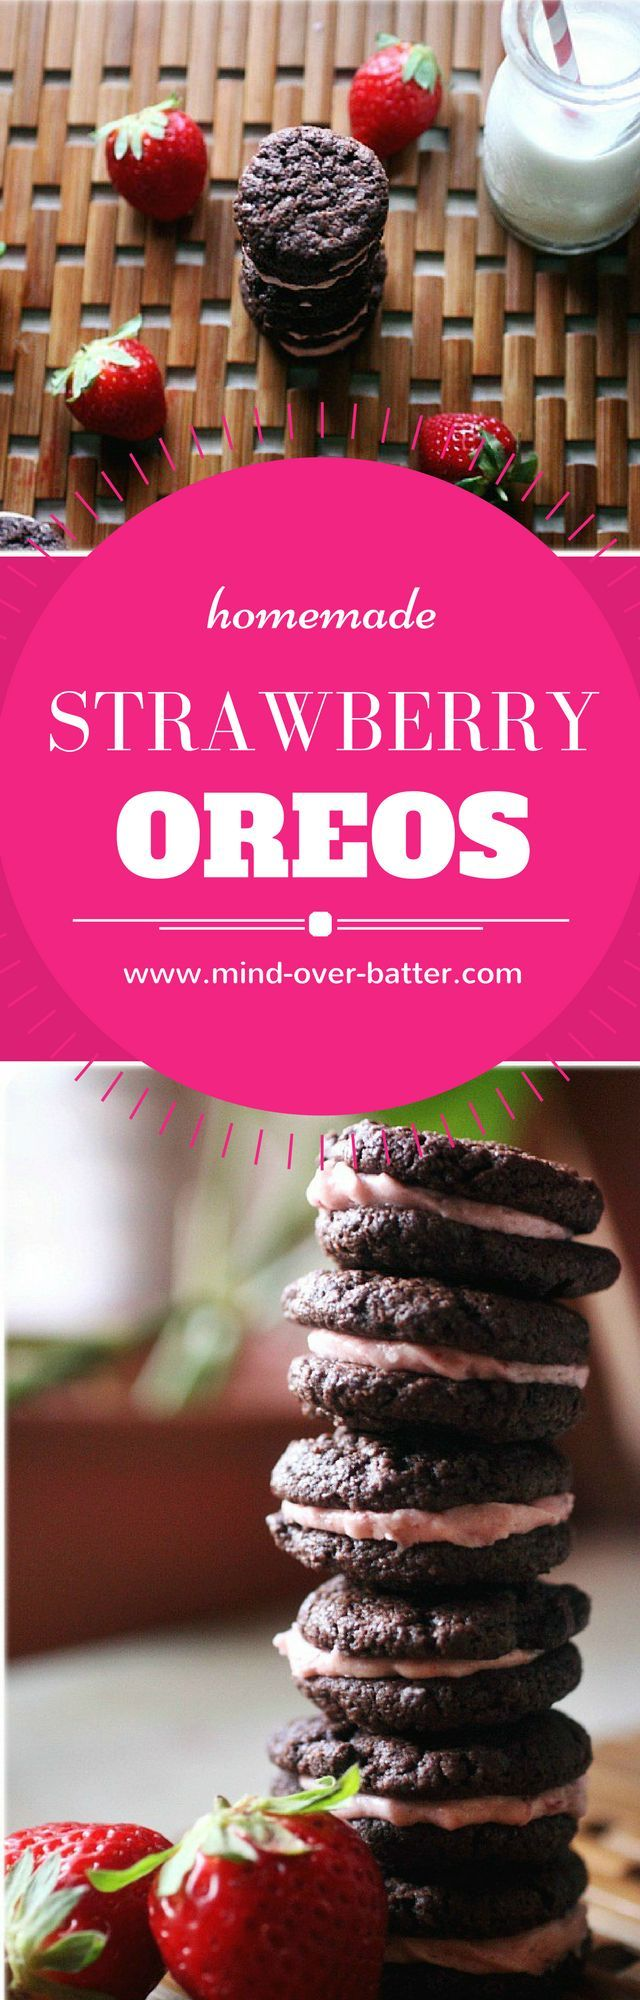 Homemade Oreo Cookies filled with a tart strawberry filling! http://WWW.MIND-OVER-BATTER.COM